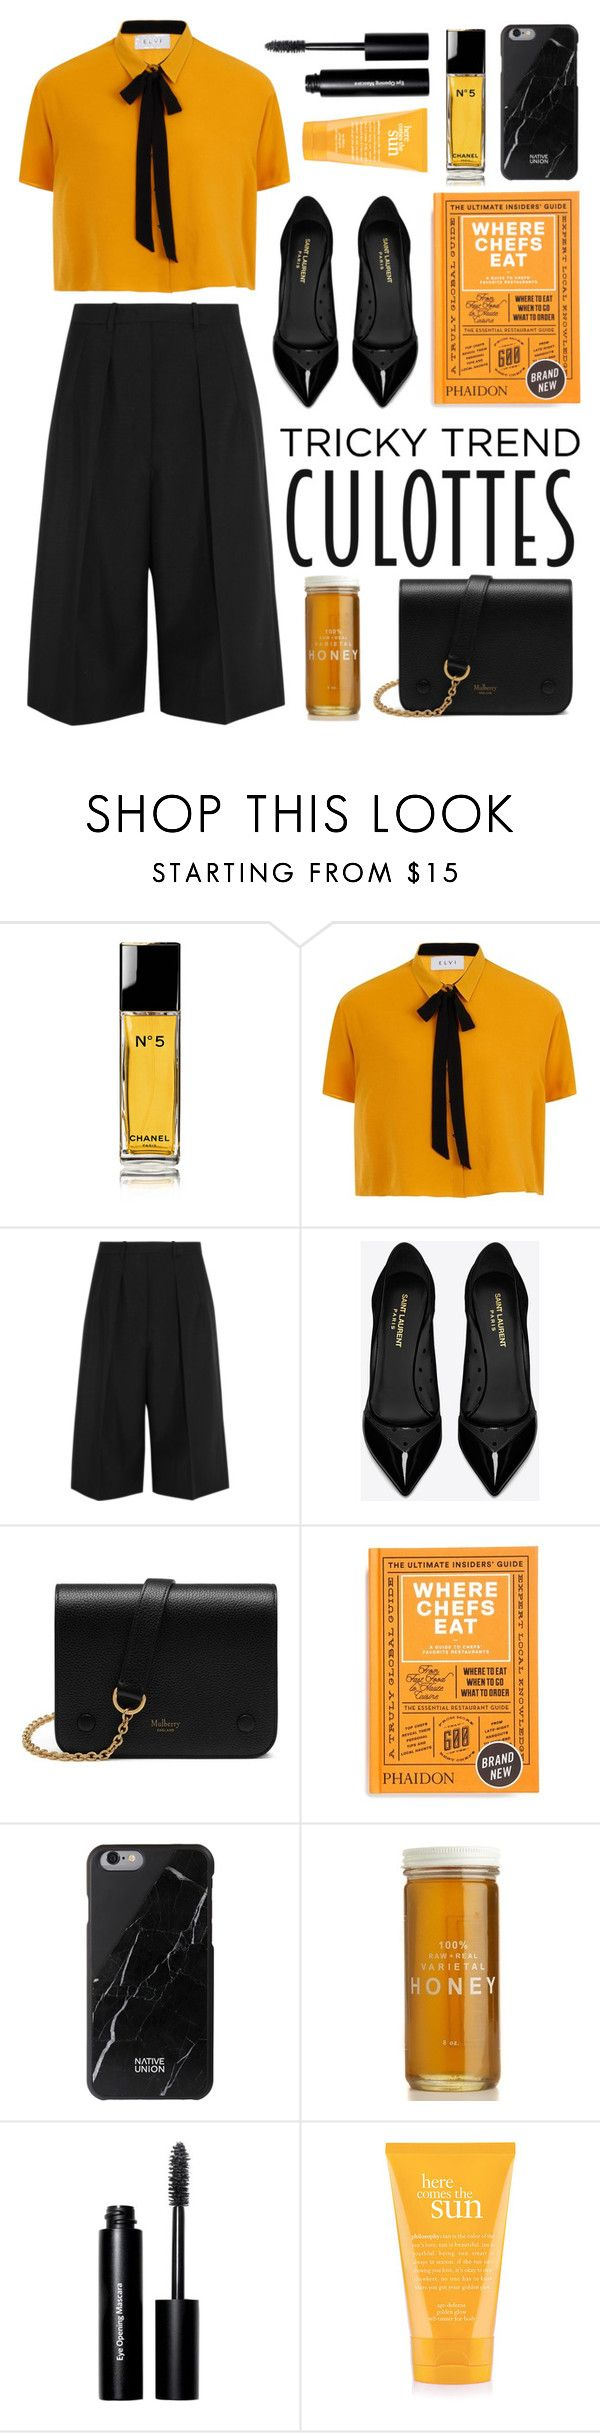 """""""tricky trend: culottes"""" by fernweeh on Polyvore featuring moda, Chanel, Elvi, Jil Sander, Yves Saint Laurent, Mulberry, PHAIDON, Native Union, Bobbi Brown Cosmetics i philosophy"""